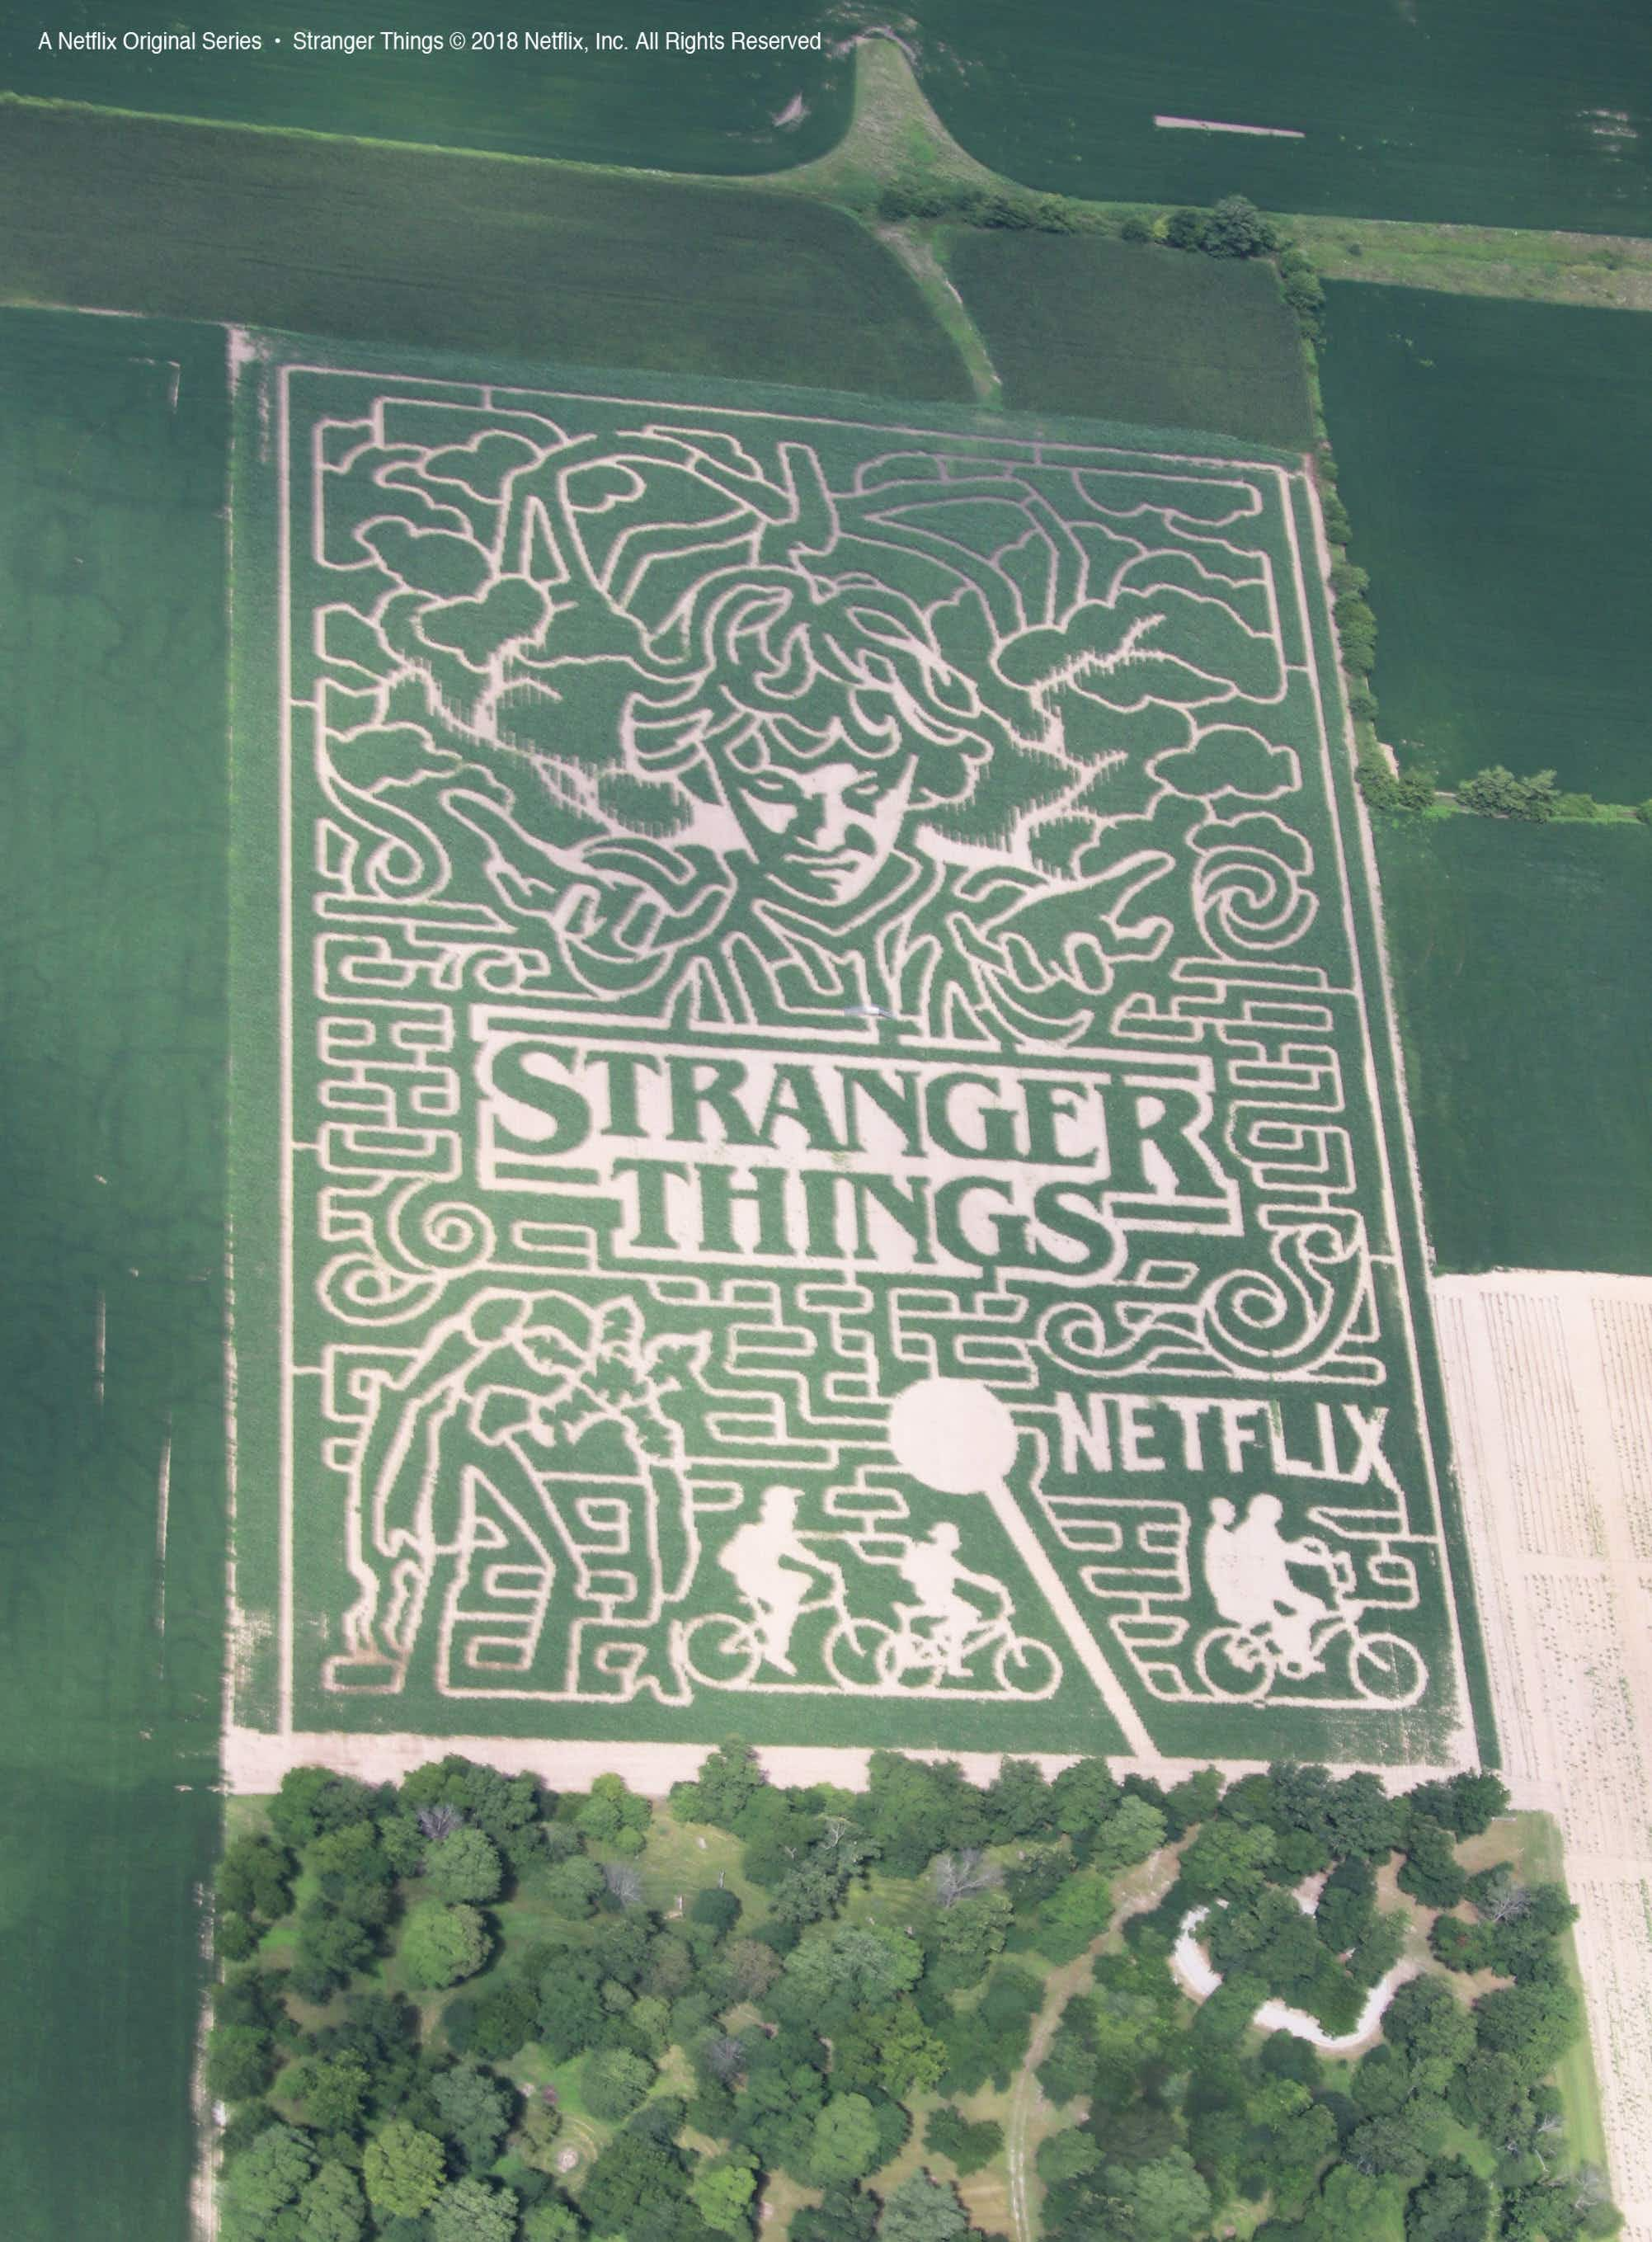 Step into the Upside Down at this colossal Stranger Things corn maze